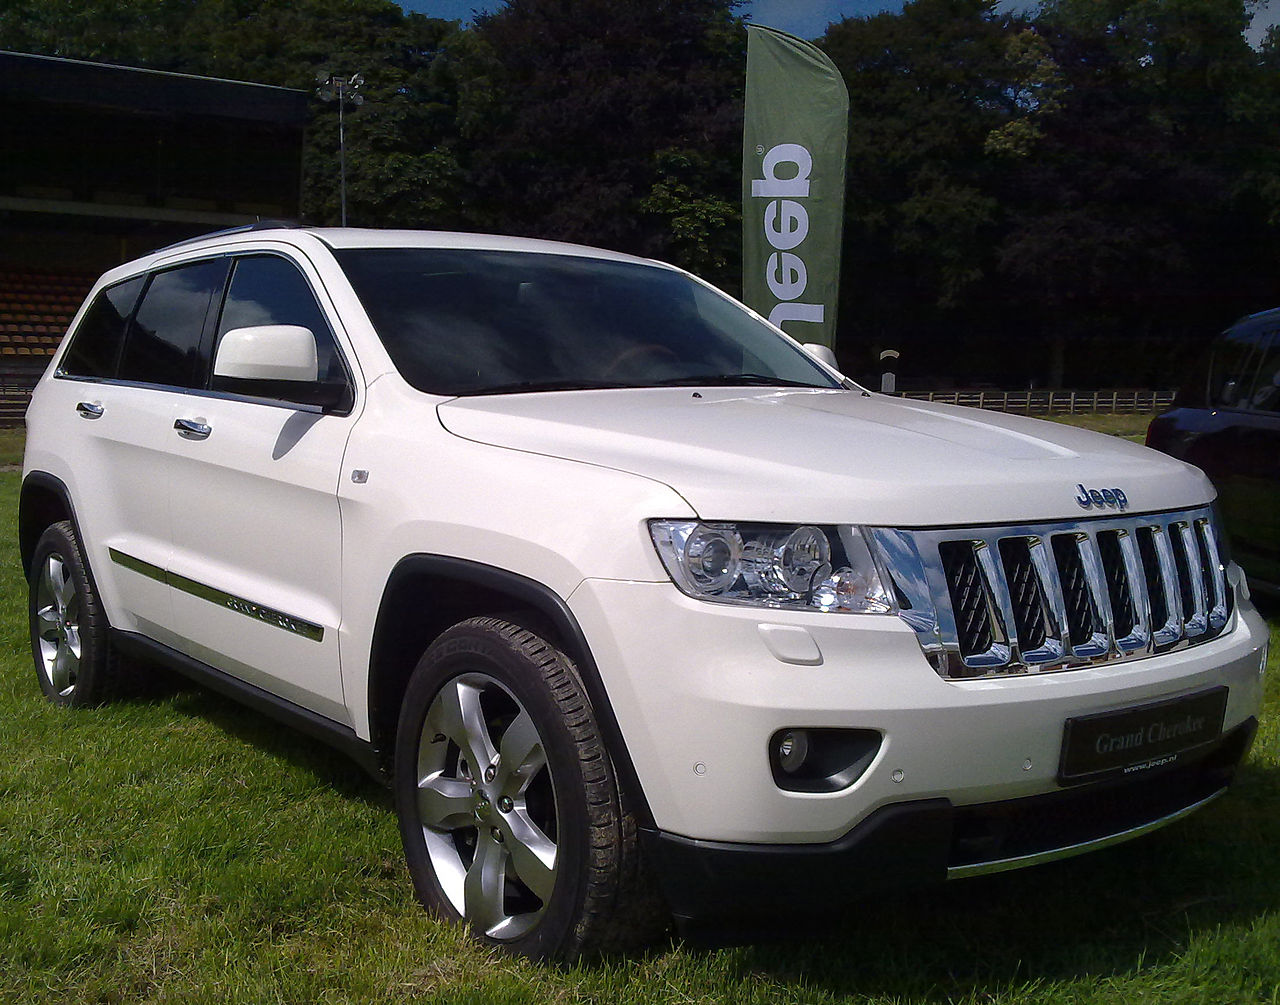 file 2011 jeep grand cherokee wikimedia commons. Black Bedroom Furniture Sets. Home Design Ideas